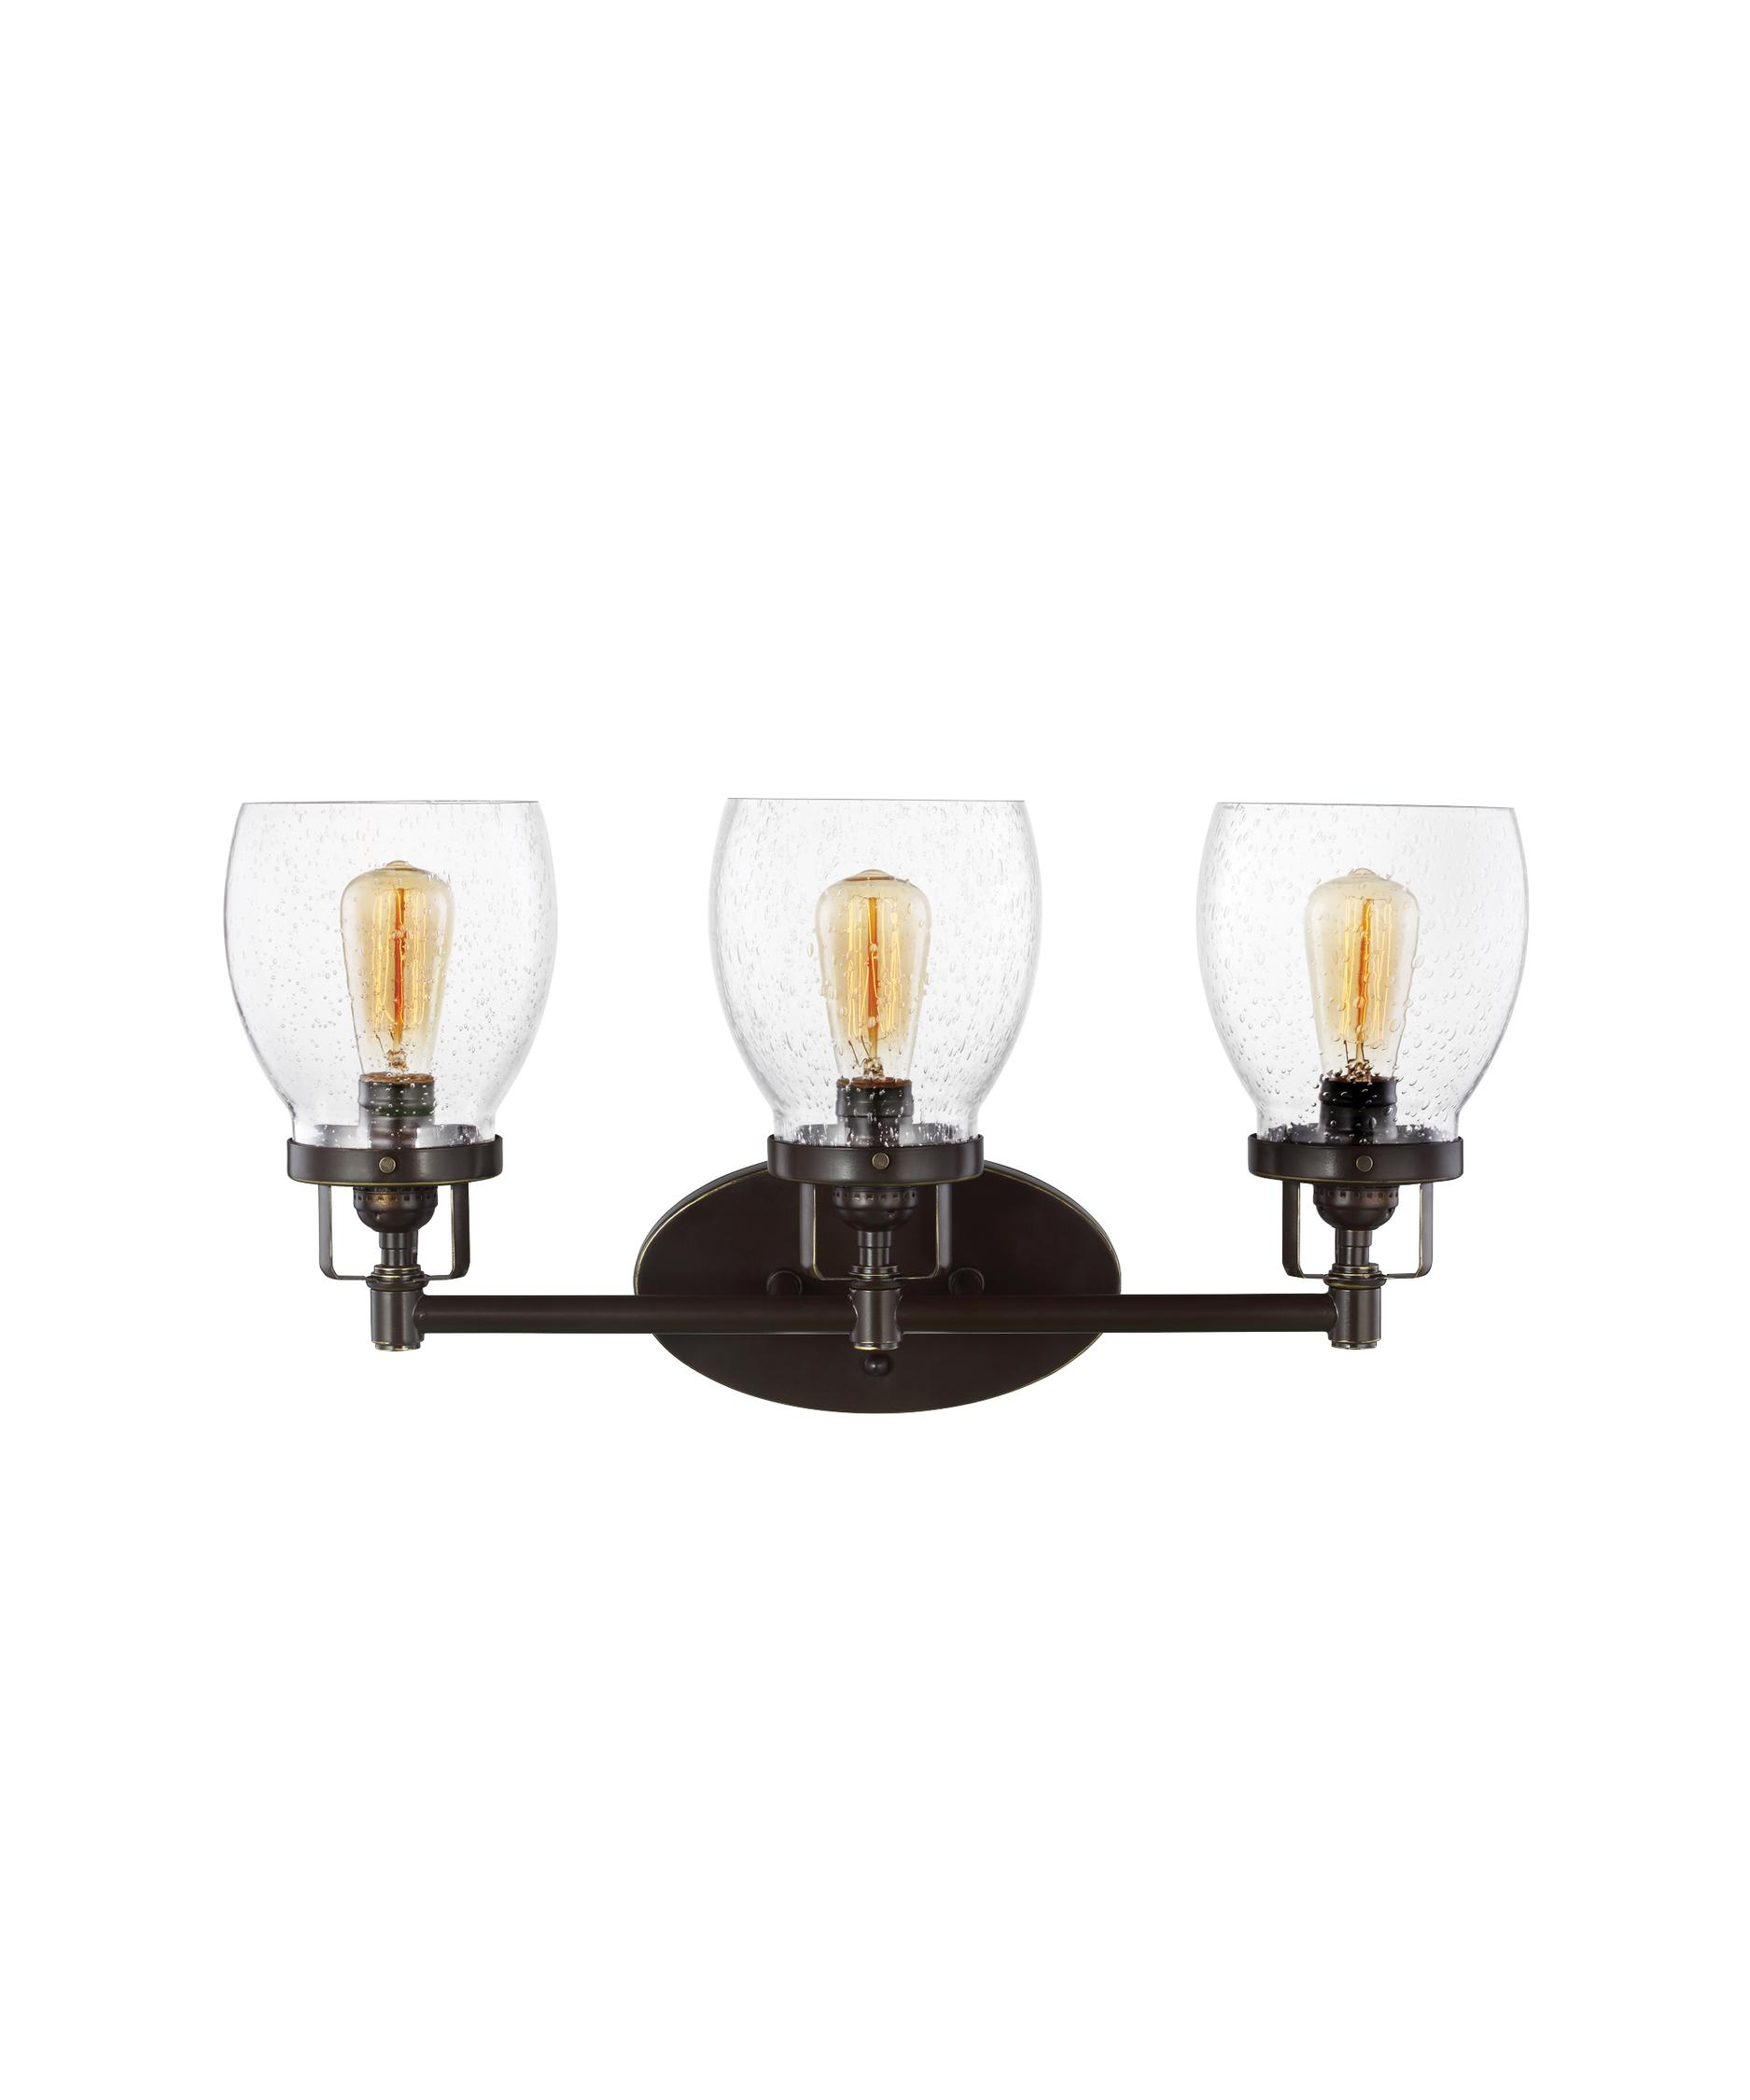 Bathroom Vanity Lights On Sale sea gull lighting 4414503 belton 21 inch wide bath vanity light